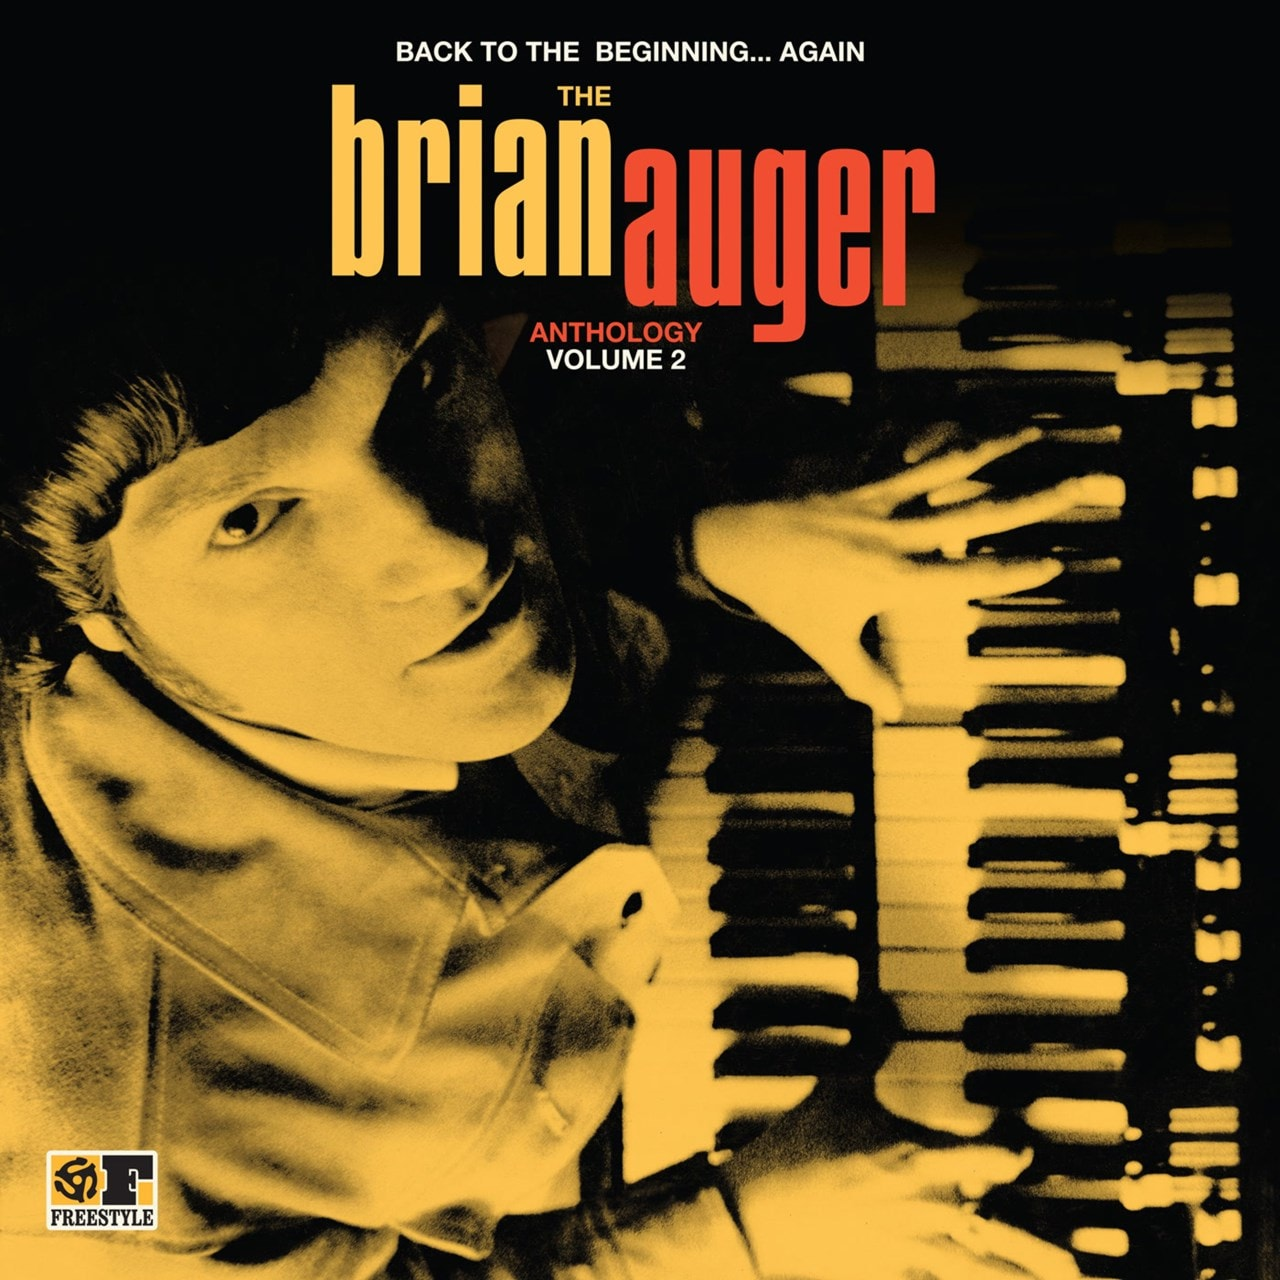 Back to the Beginning...Again: The Brian Auger Anthology - Volume 2 - 1